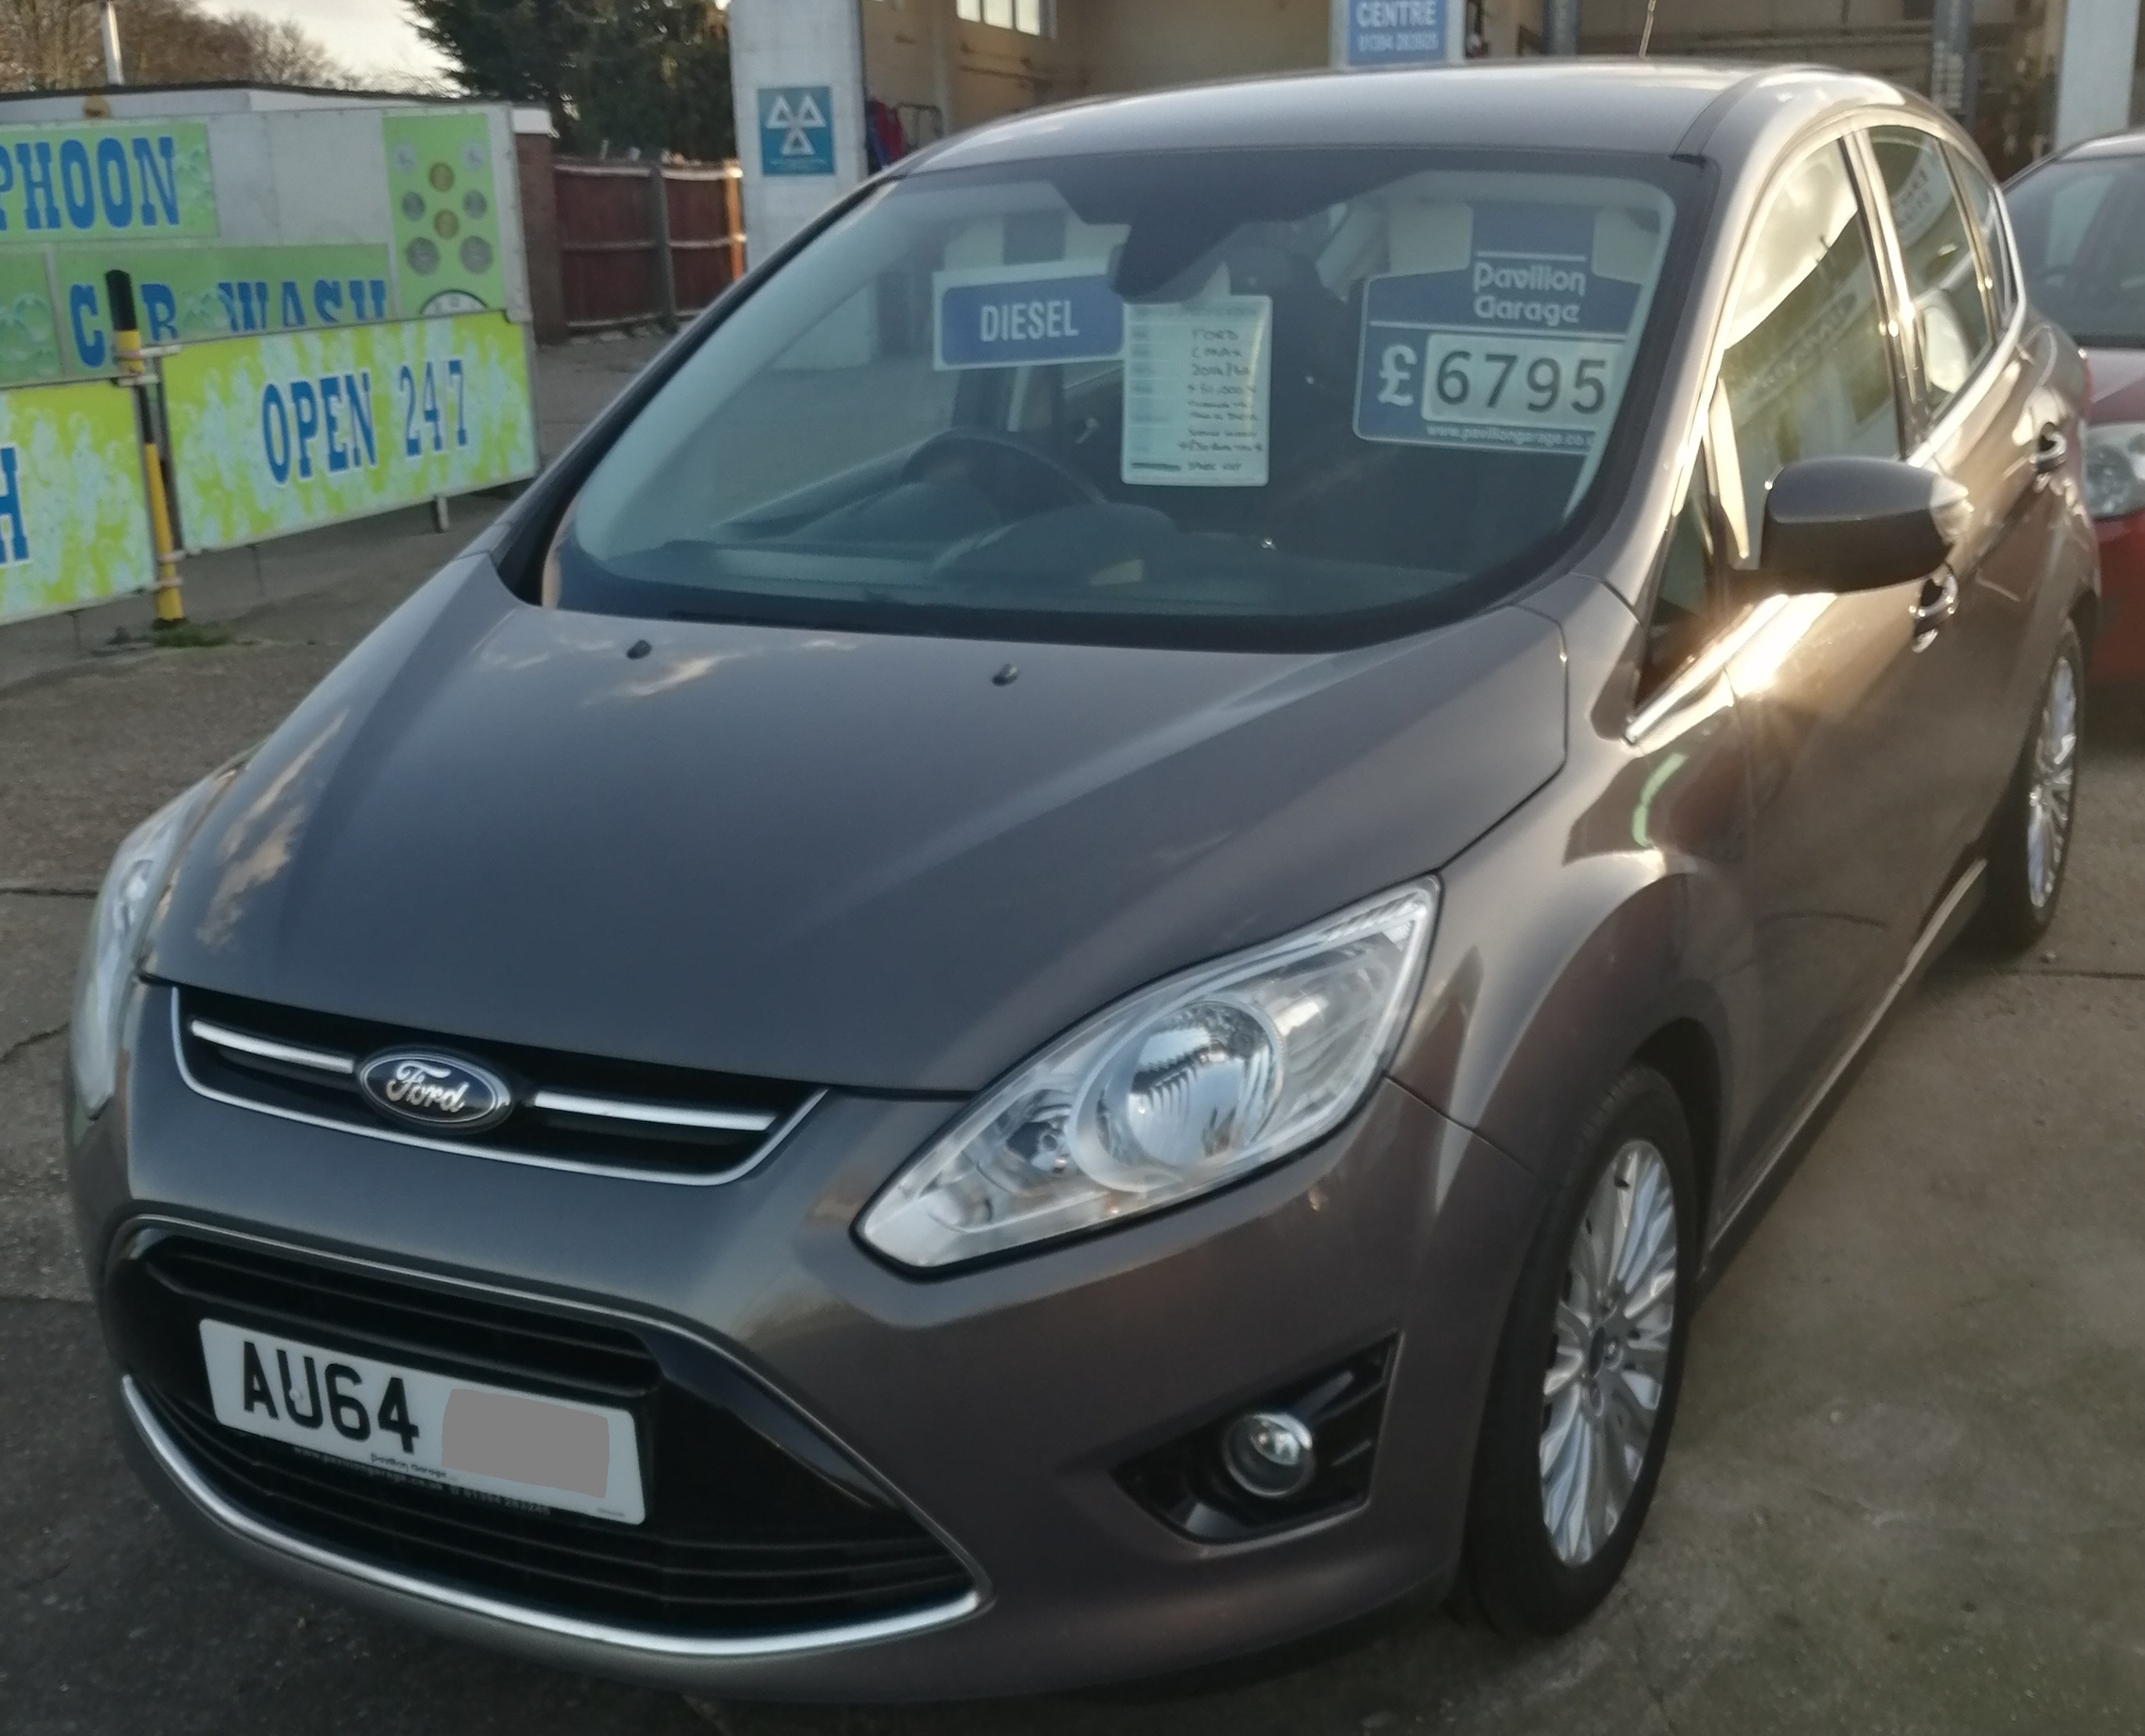 Ford C Max Titanium TDCi 1560cc - Diesel 2014 / 64 *** 51,000 miles *** Service History Spare Key *** ONLY £30 per year Road Tax *** £6795